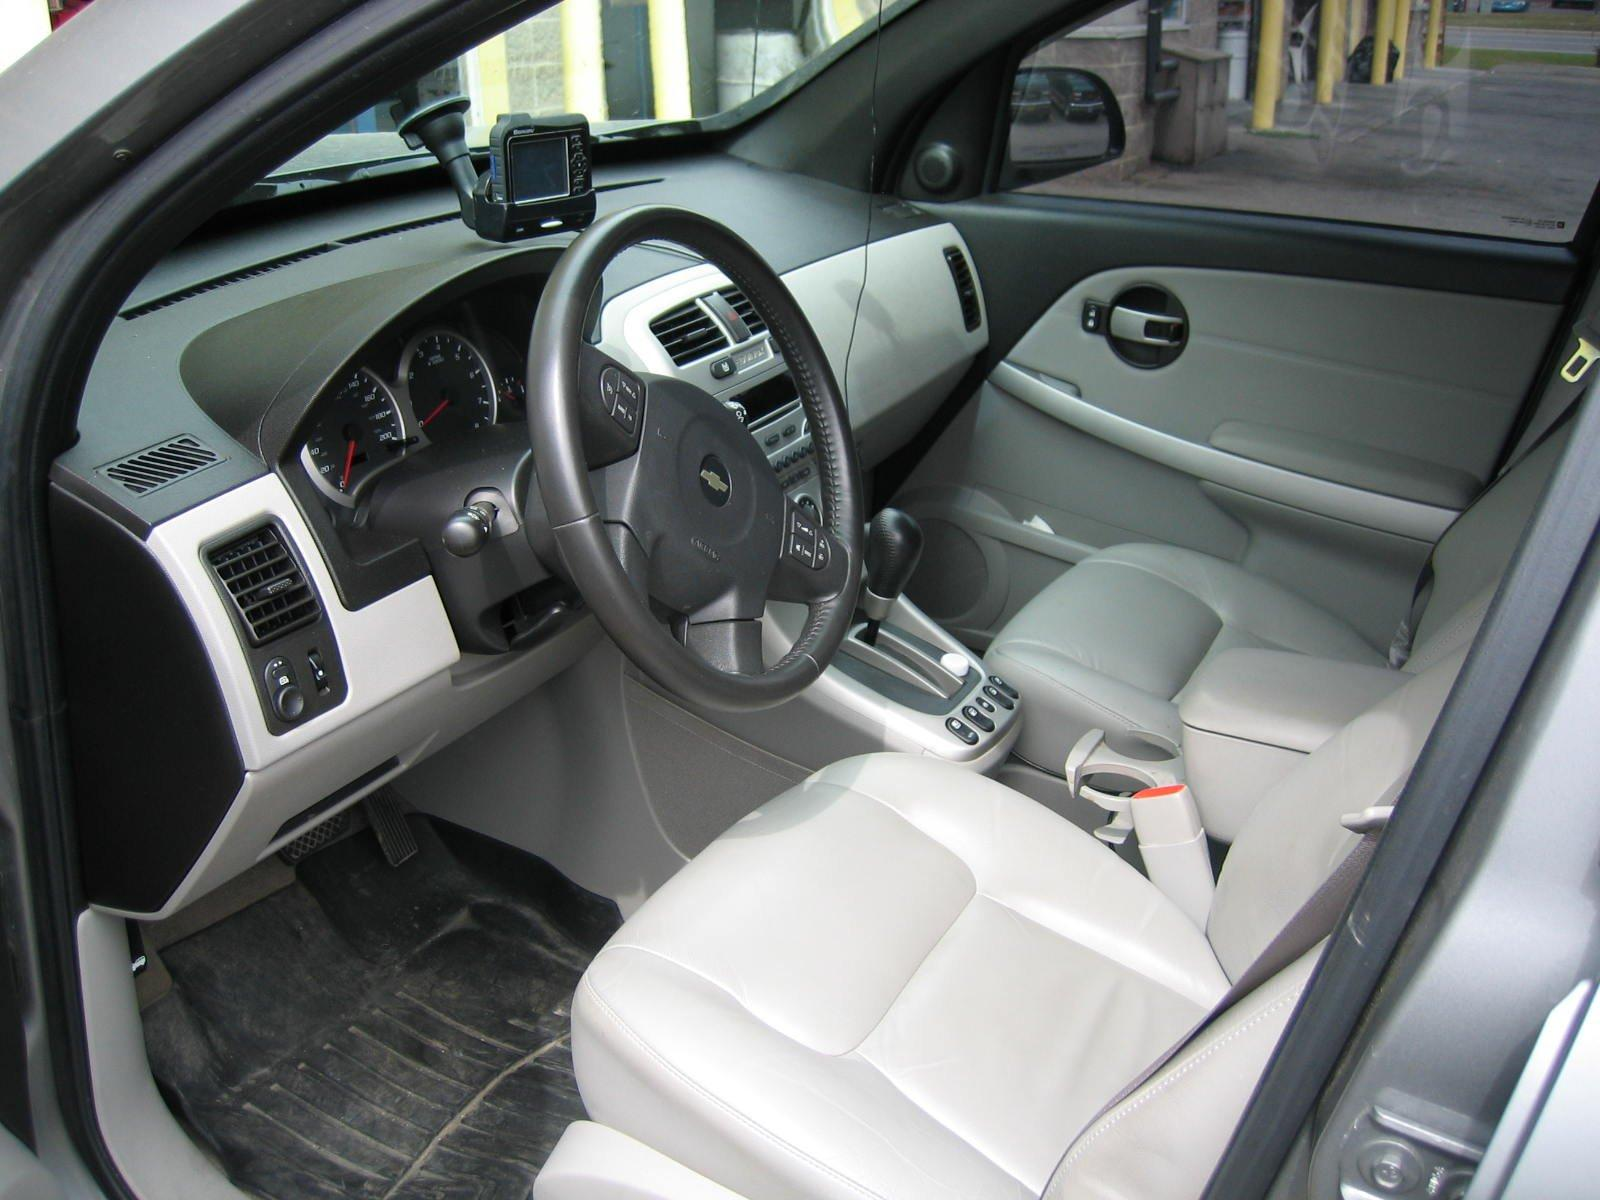 2005 chevrolet equinox - information and photos - zombiedrive